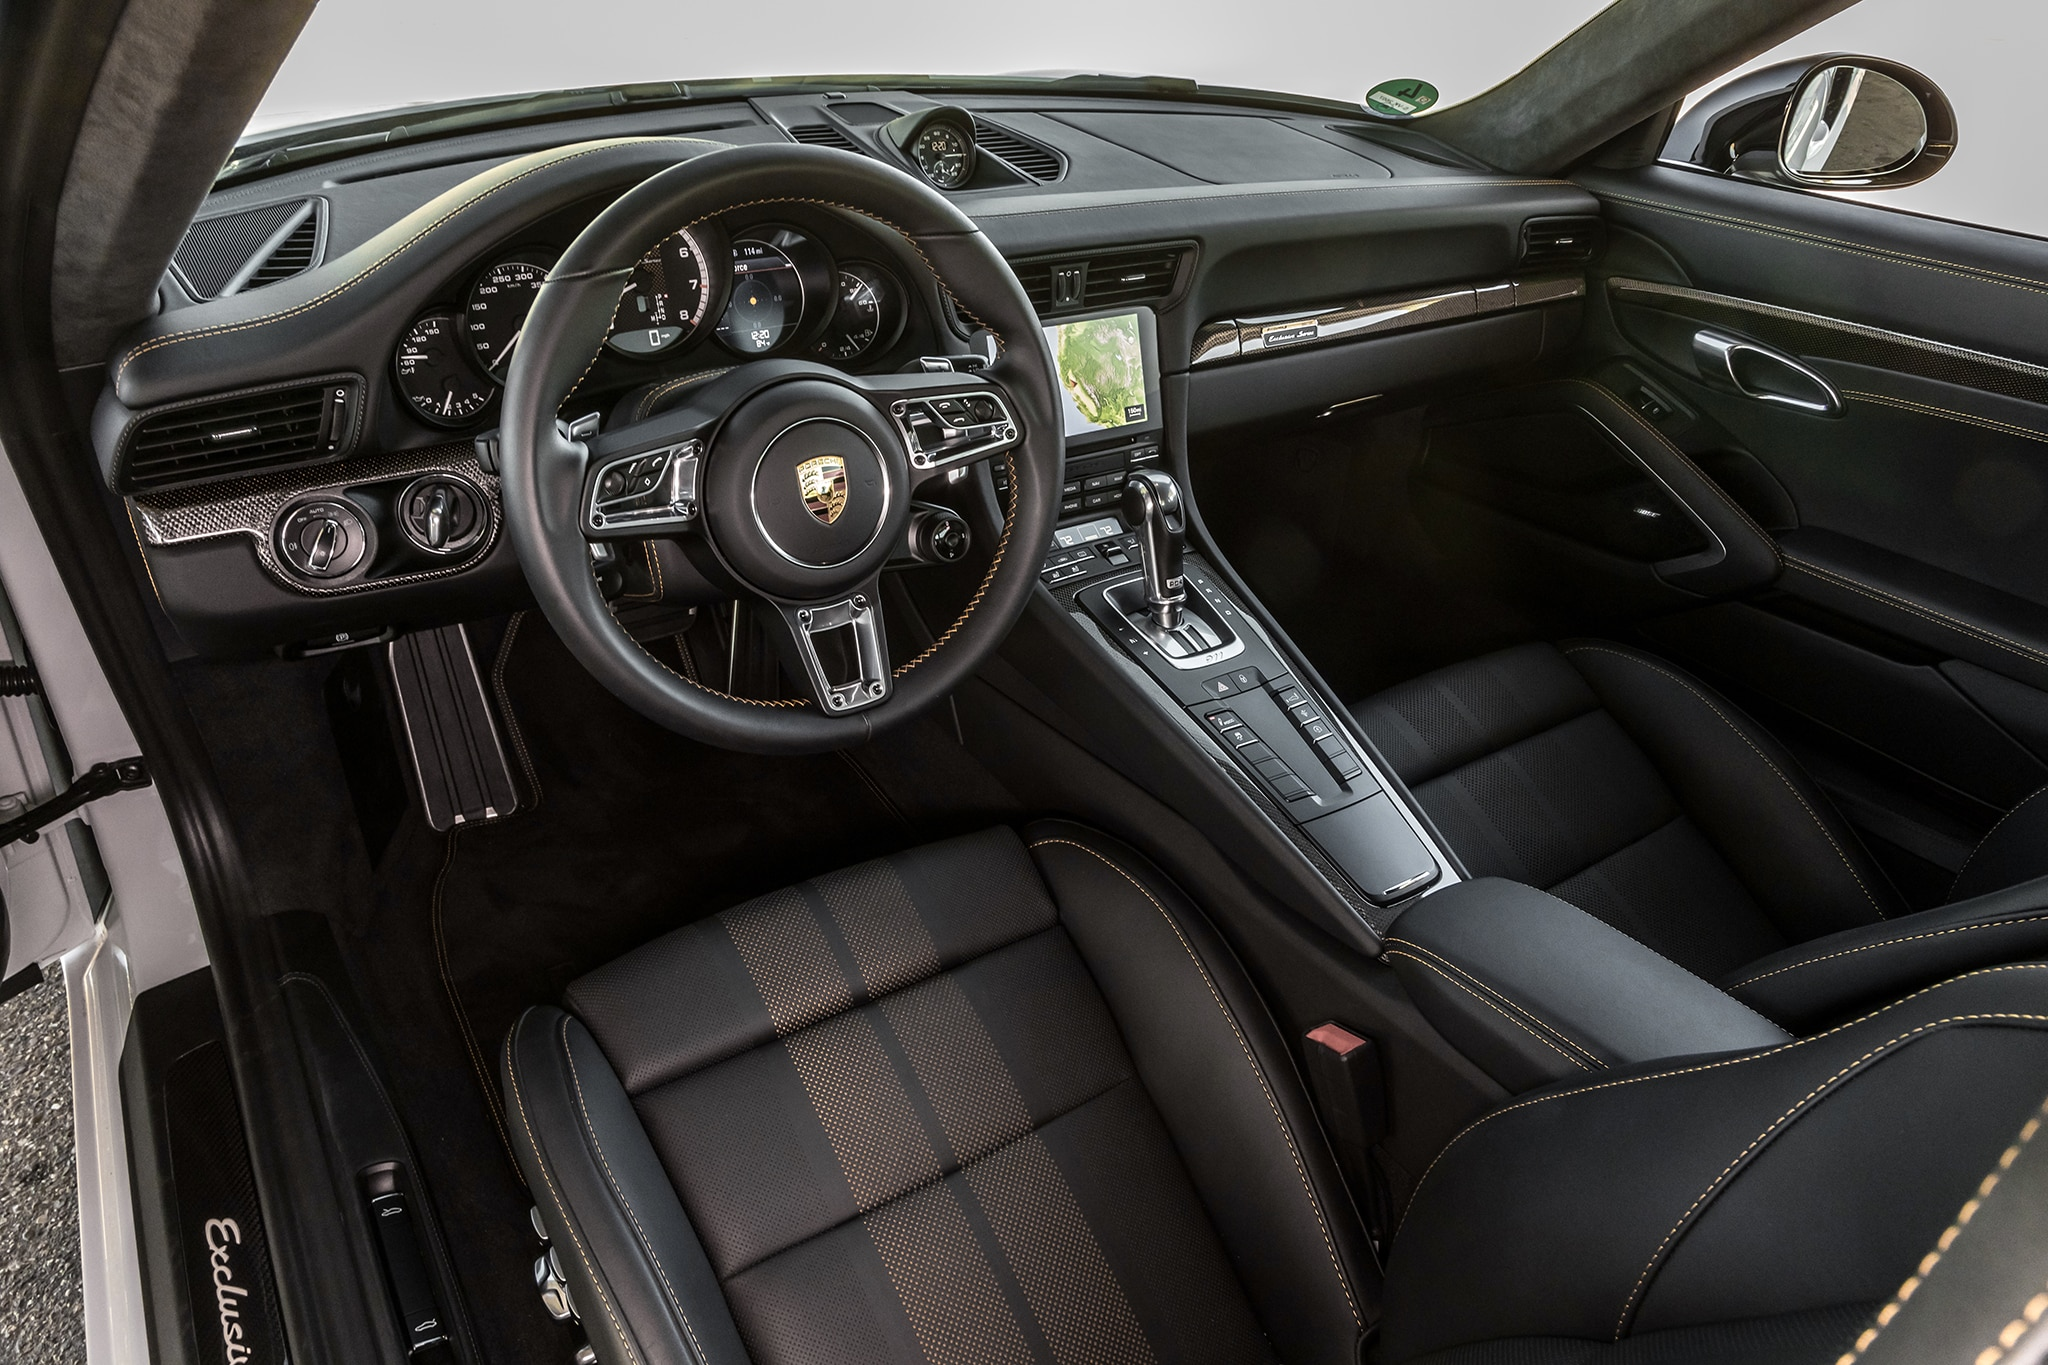 2018 Porsche 911 Turbo S Exclusive Cabin 01